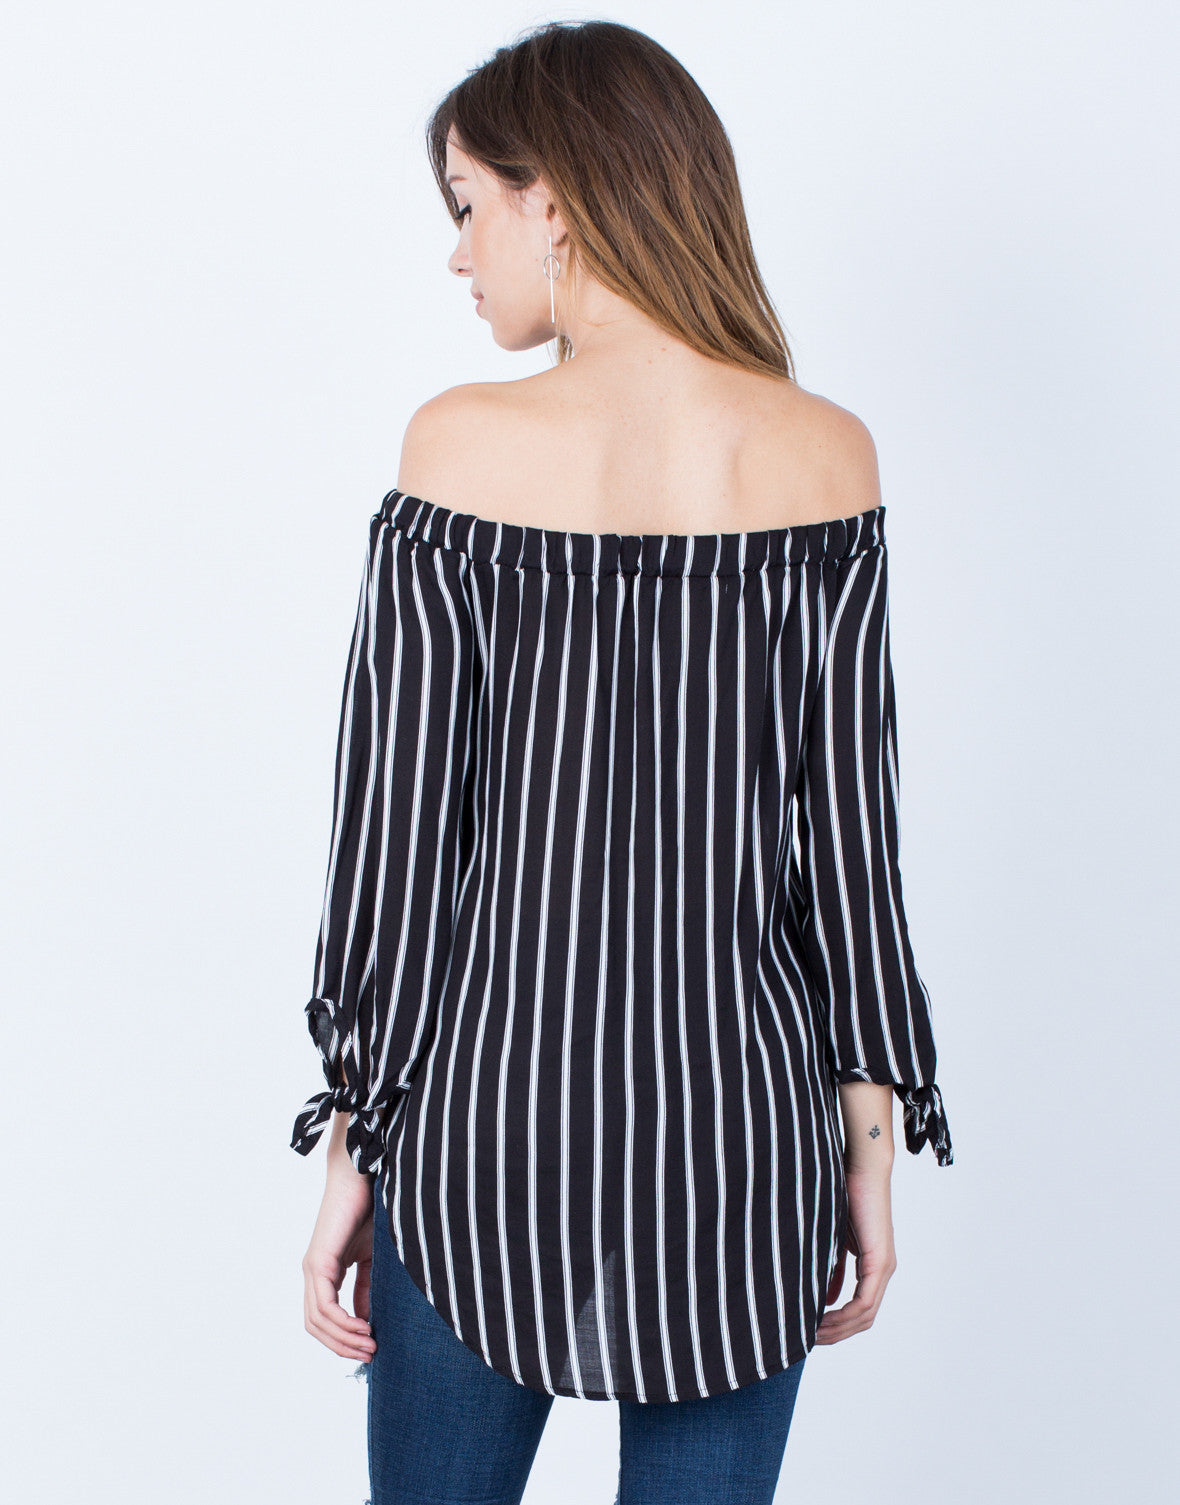 Back View of White Lines Off-the-Shoulder Top